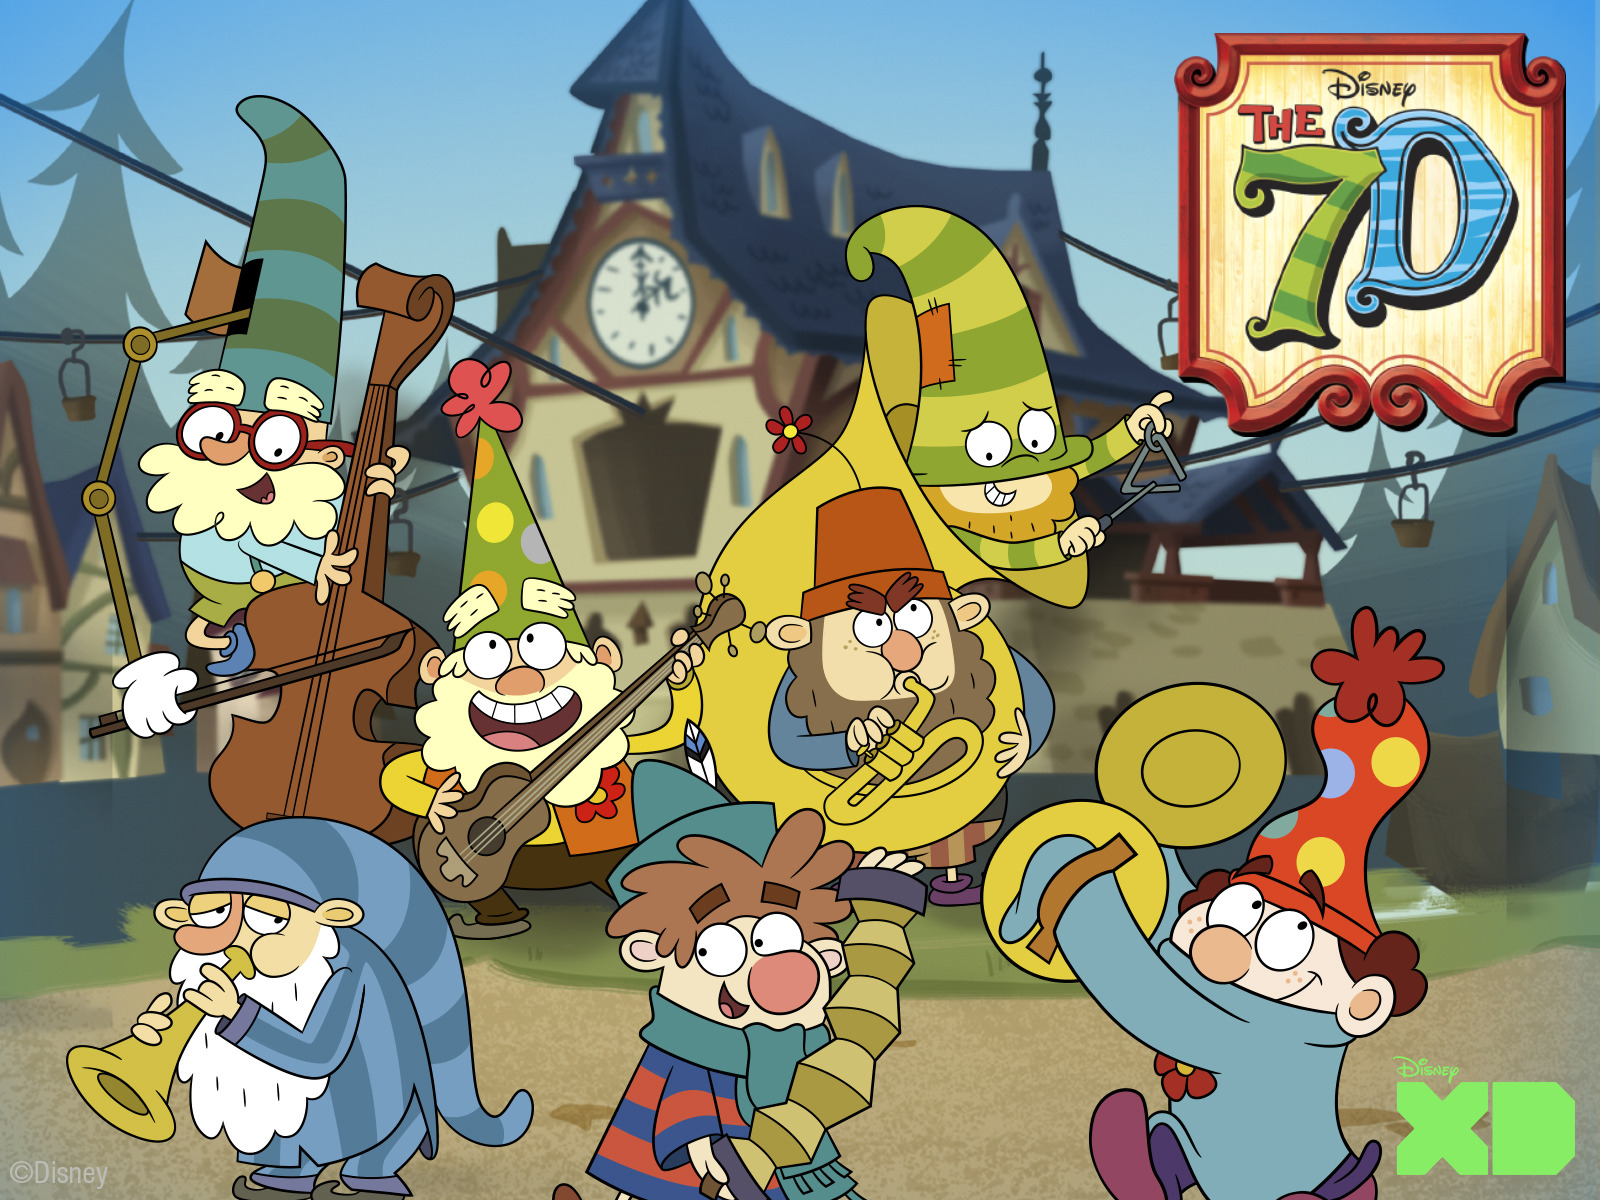 Watch The 7D Season 2 Episode 11: Miss Fortune Teller on